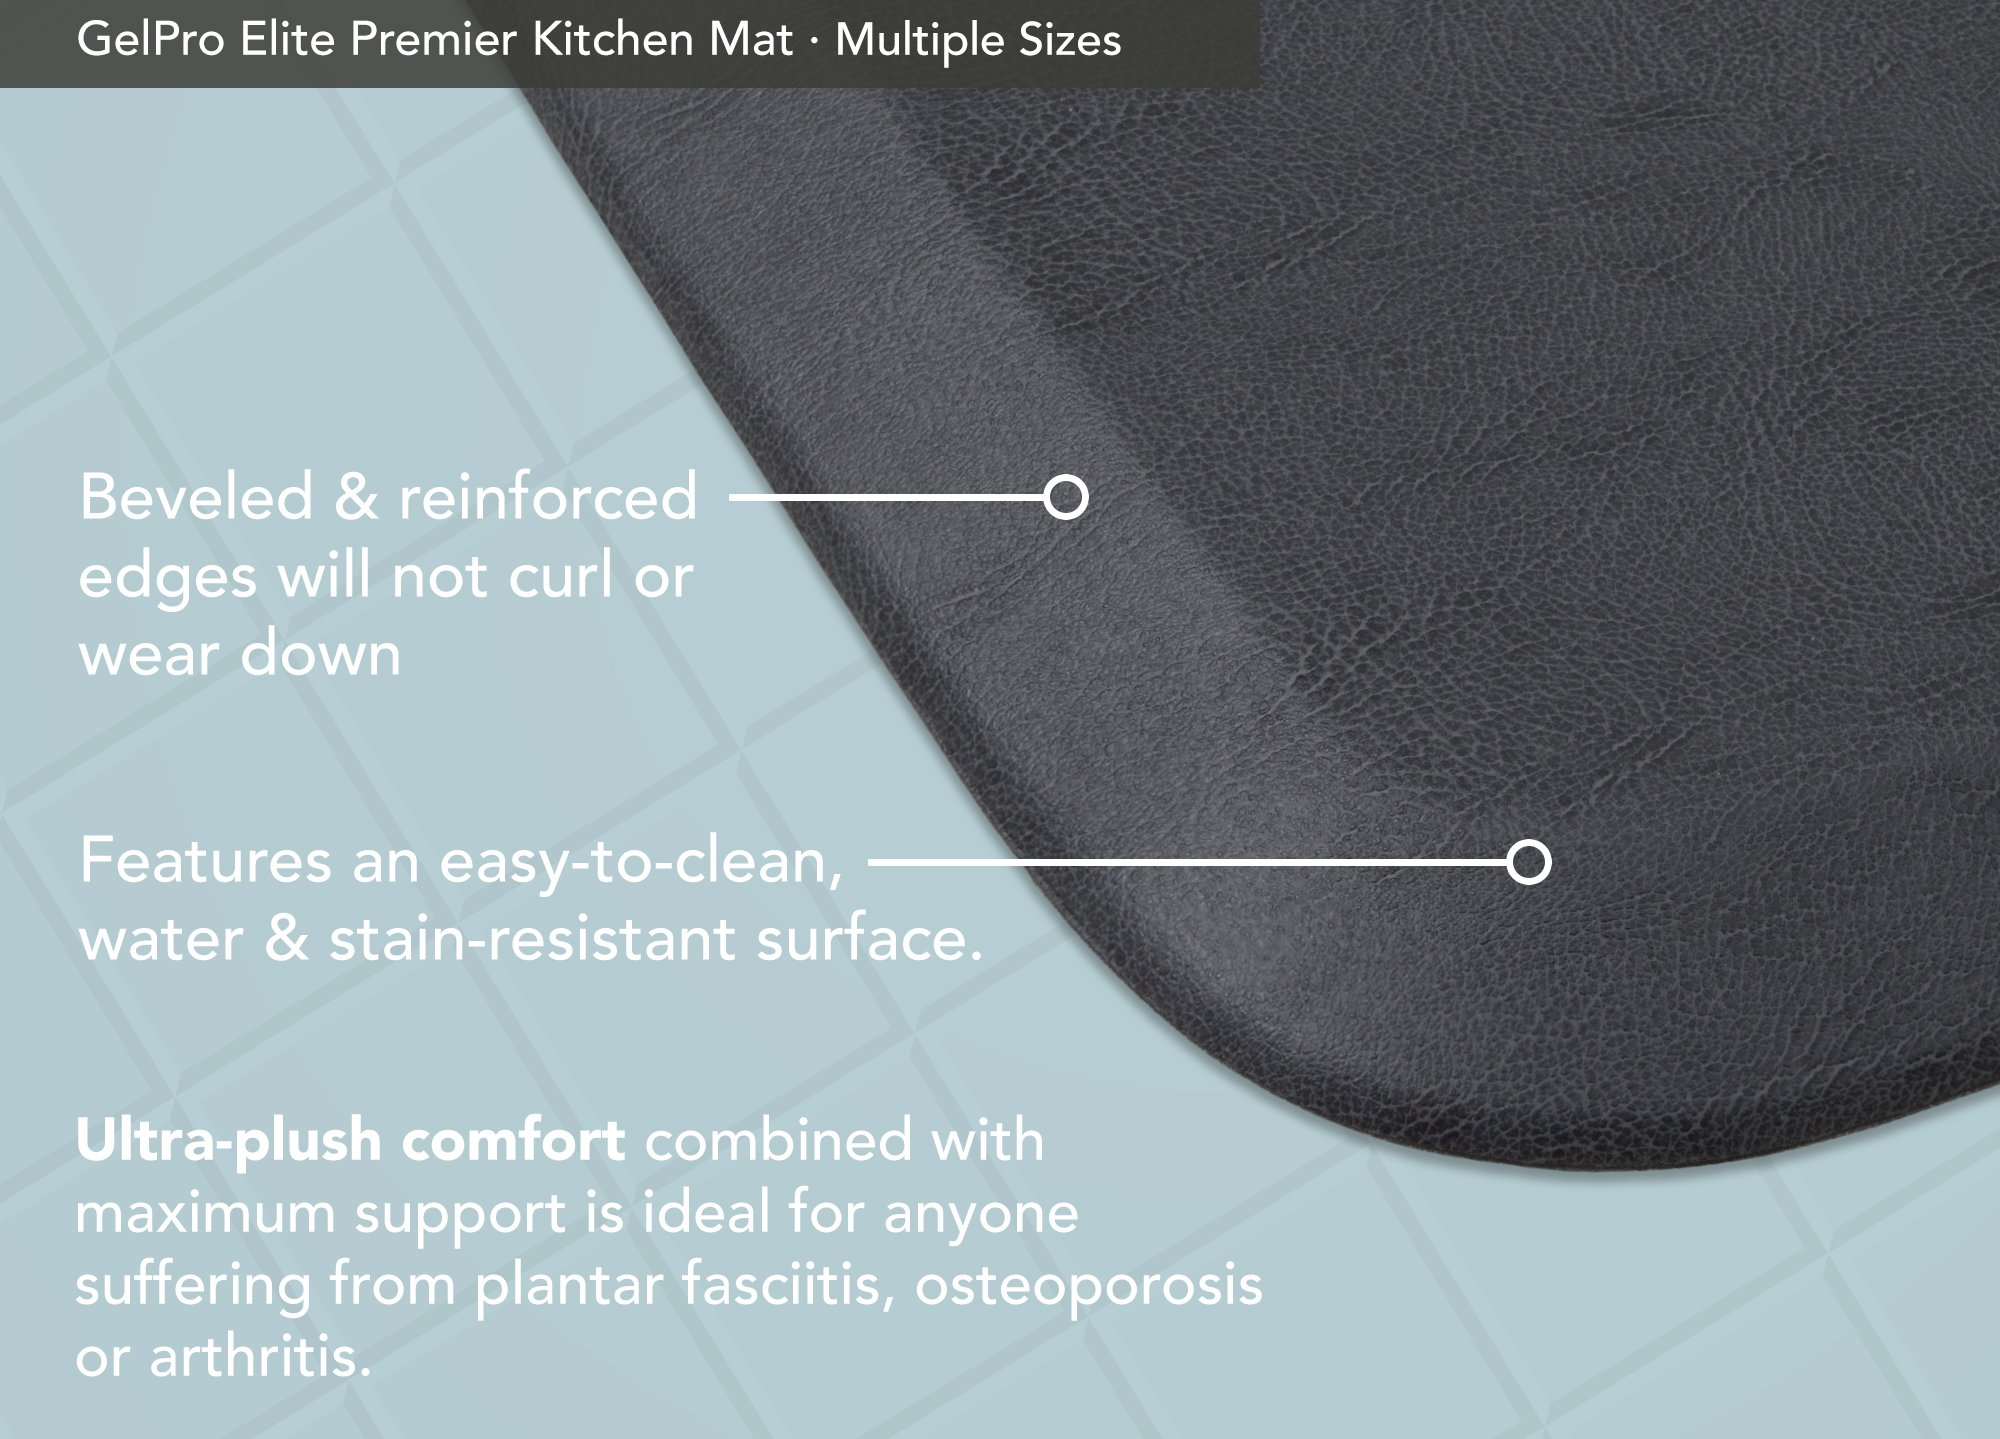 """GelPro Elite Premier Anti-Fatigue Kitchen Comfort Floor Mat, 20x72"""", Vintage Leather Slate Stain Resistant Surface with Therapeutic Gel and Energy-return Foam for Health and Wellness by GelPro (Image #4)"""